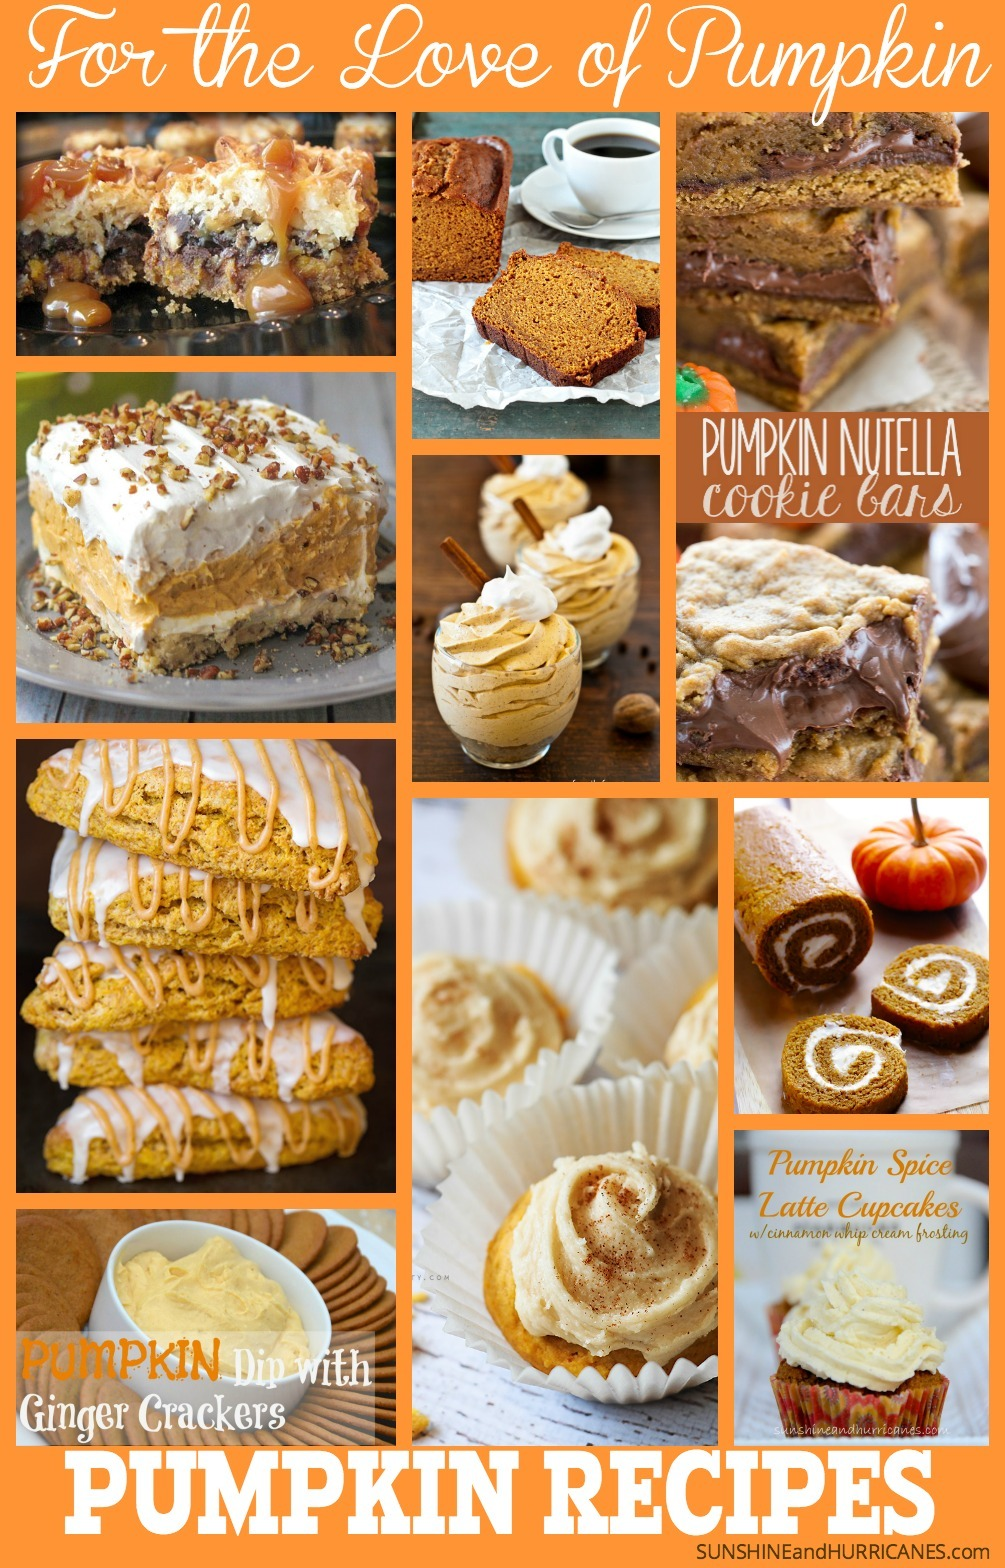 Do you love the first time their is a hint of a chill in the air, because you know it means pumpkin season has begun? For the true pumpkin lovers, we've found the best of the very best pumpkin recipes and collected them in one easy place for you to find this fall (or anytime of year). Enjoy the comfort of your favorite pumpkin treats while you curl up and watch the season change. The Pumpkin Lovers Pumpin Recipes Round-Up. SunshineandHurricanes.com